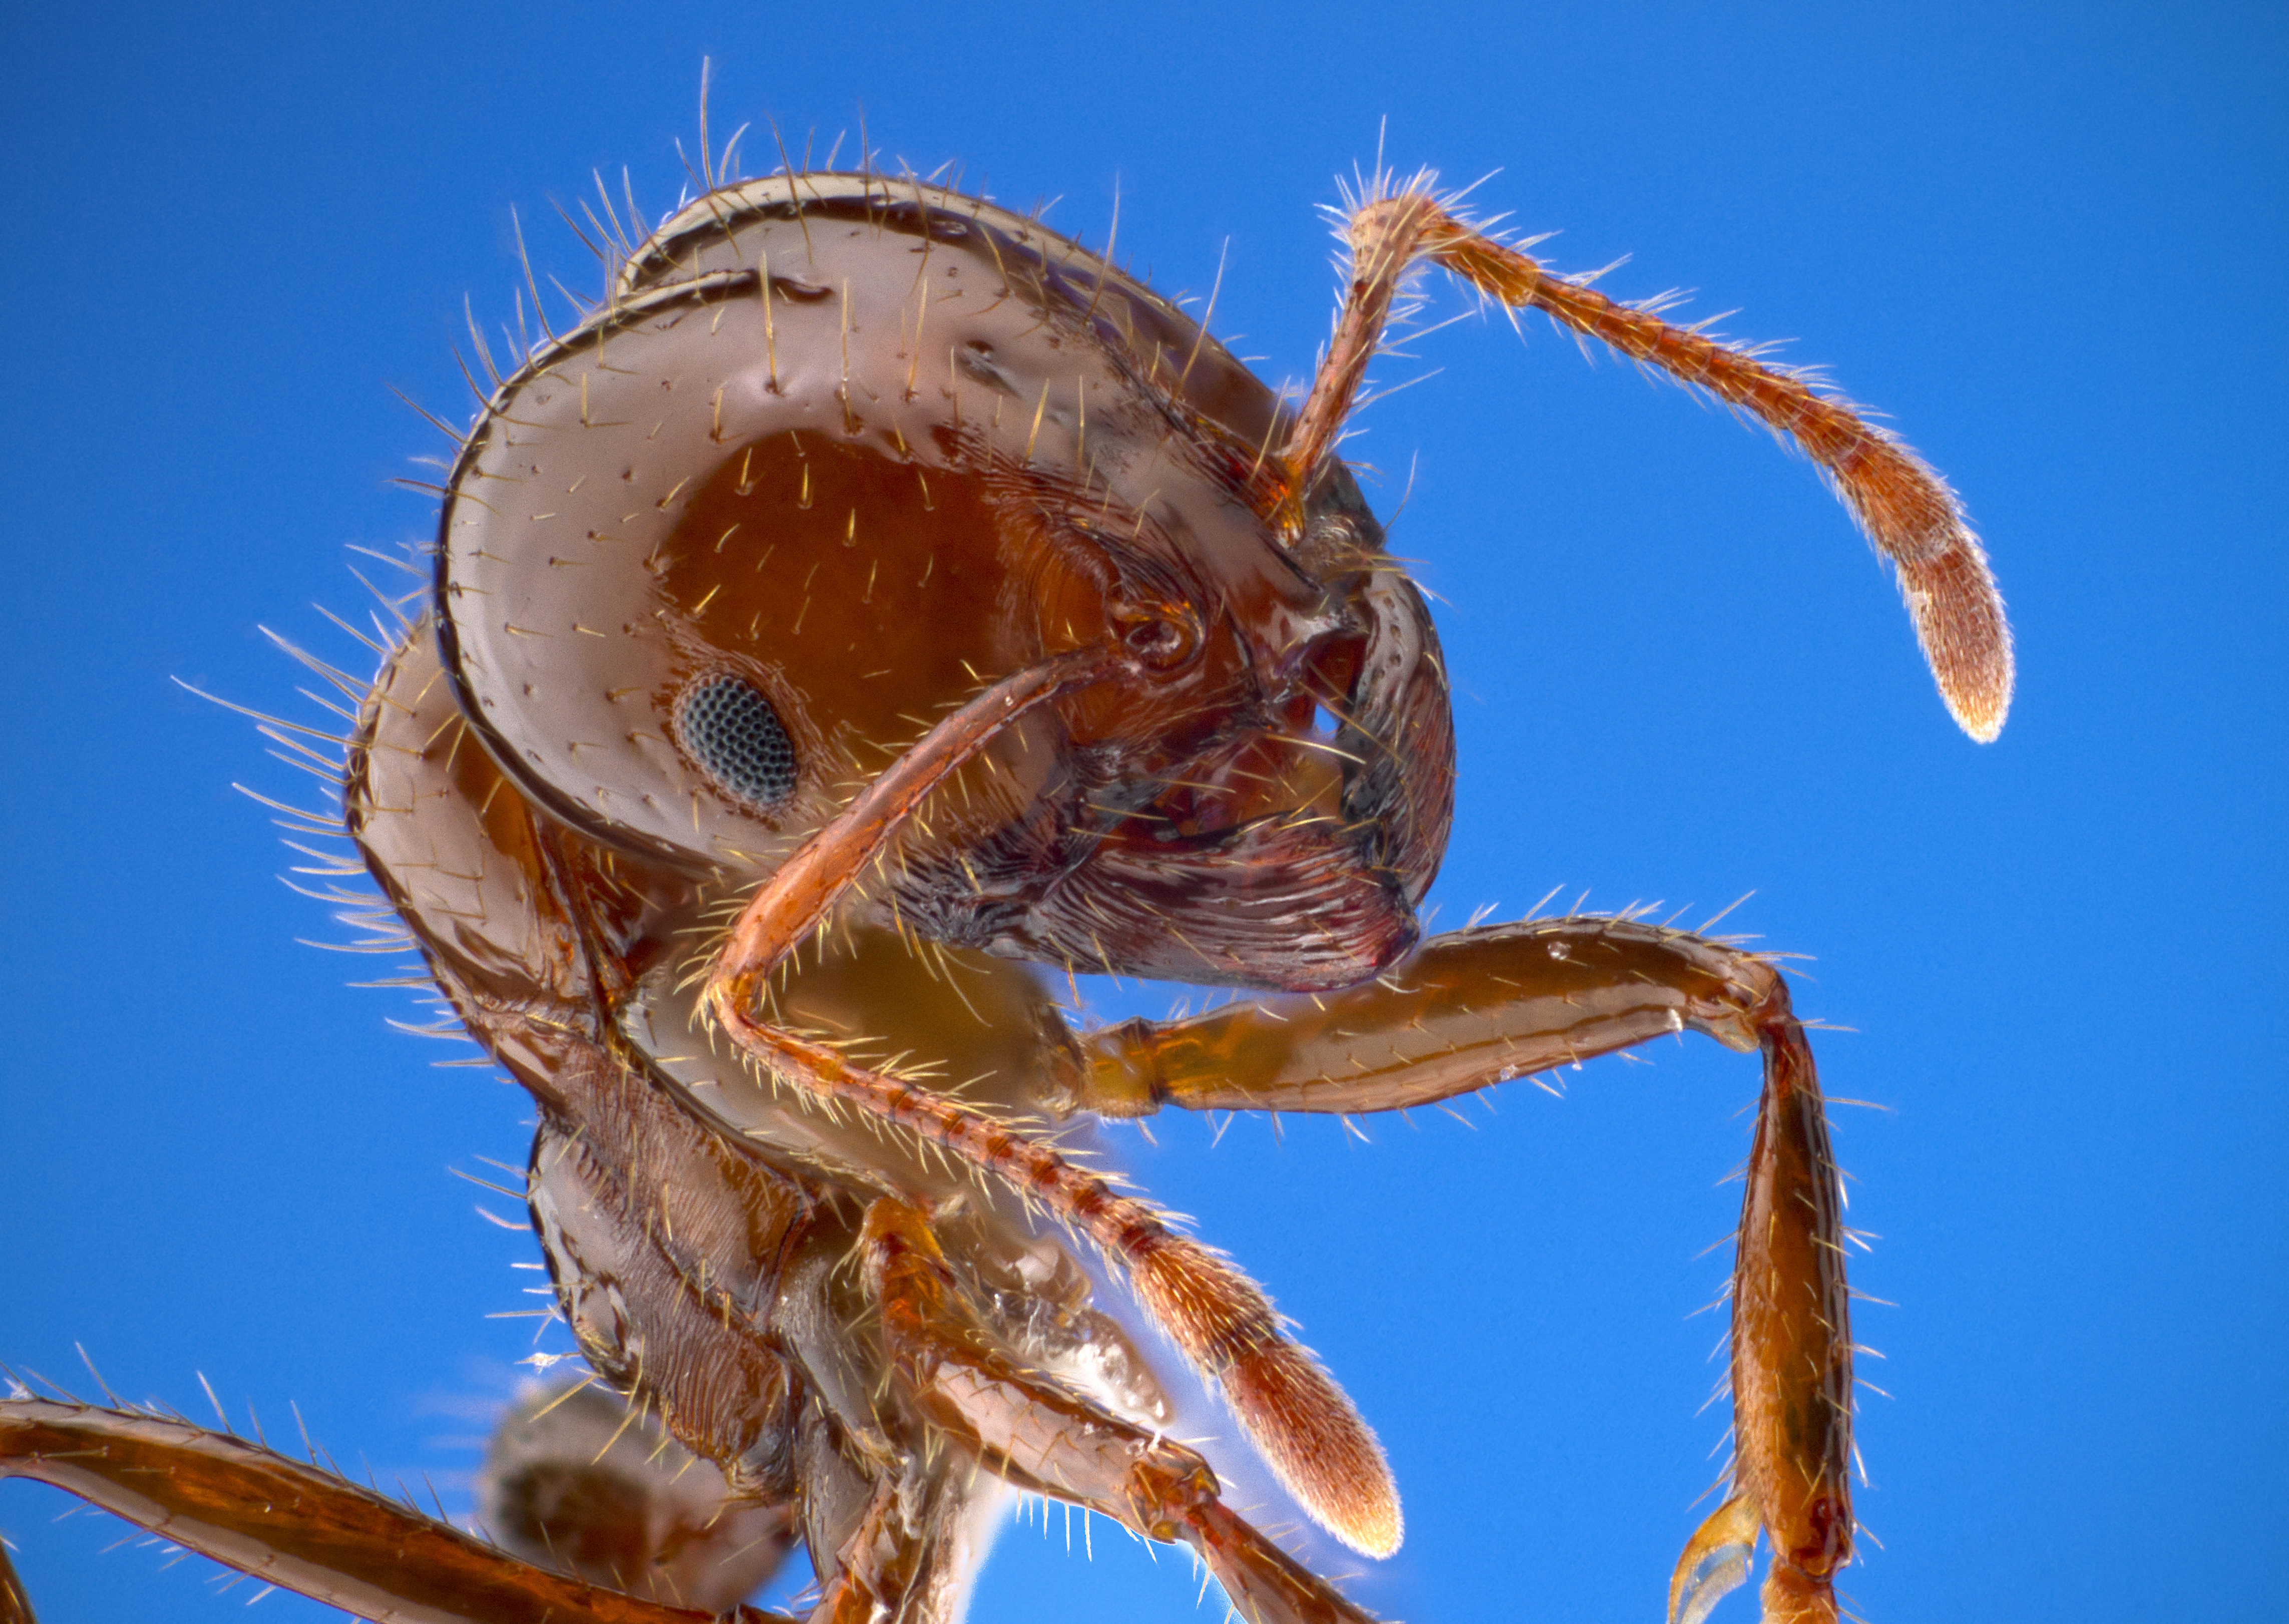 Invasive Species Filefrench Drain Diagramjpg Wikipedia The Free Encyclopedia Portrait Of A Red Imported Fire Ant Solenopsis Invicta This Arrived To